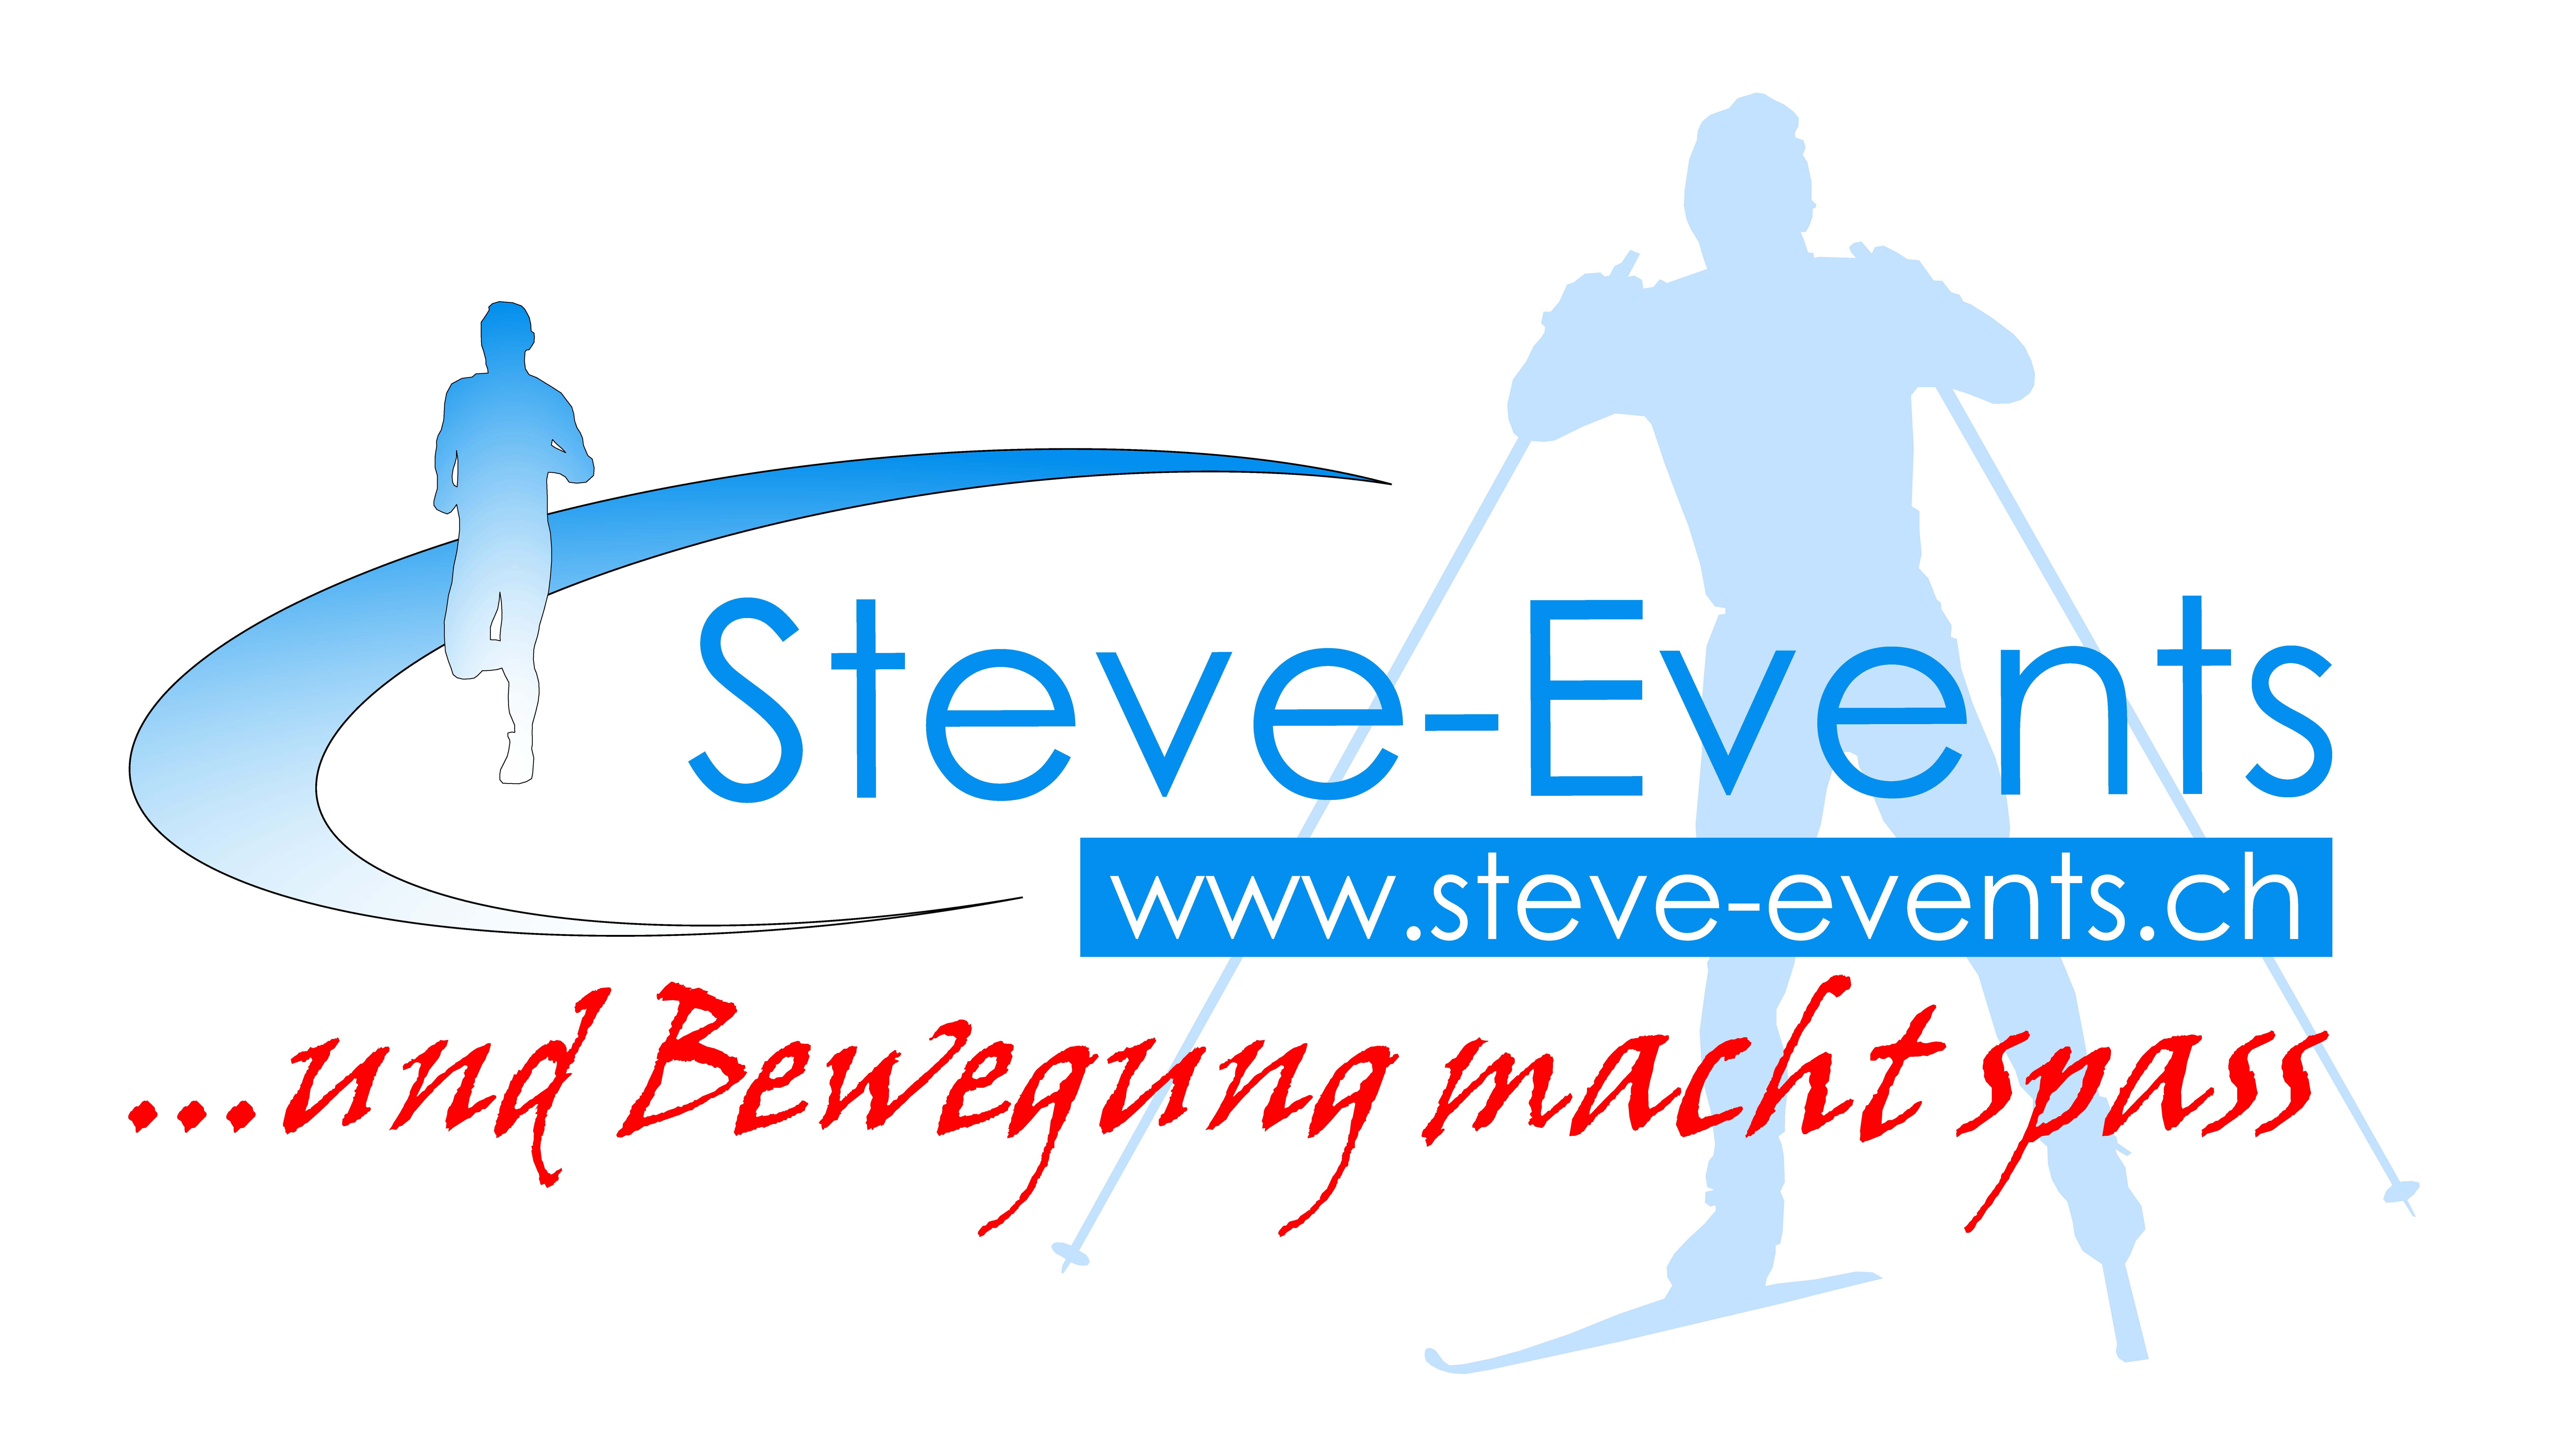 STEVE-EVENTS